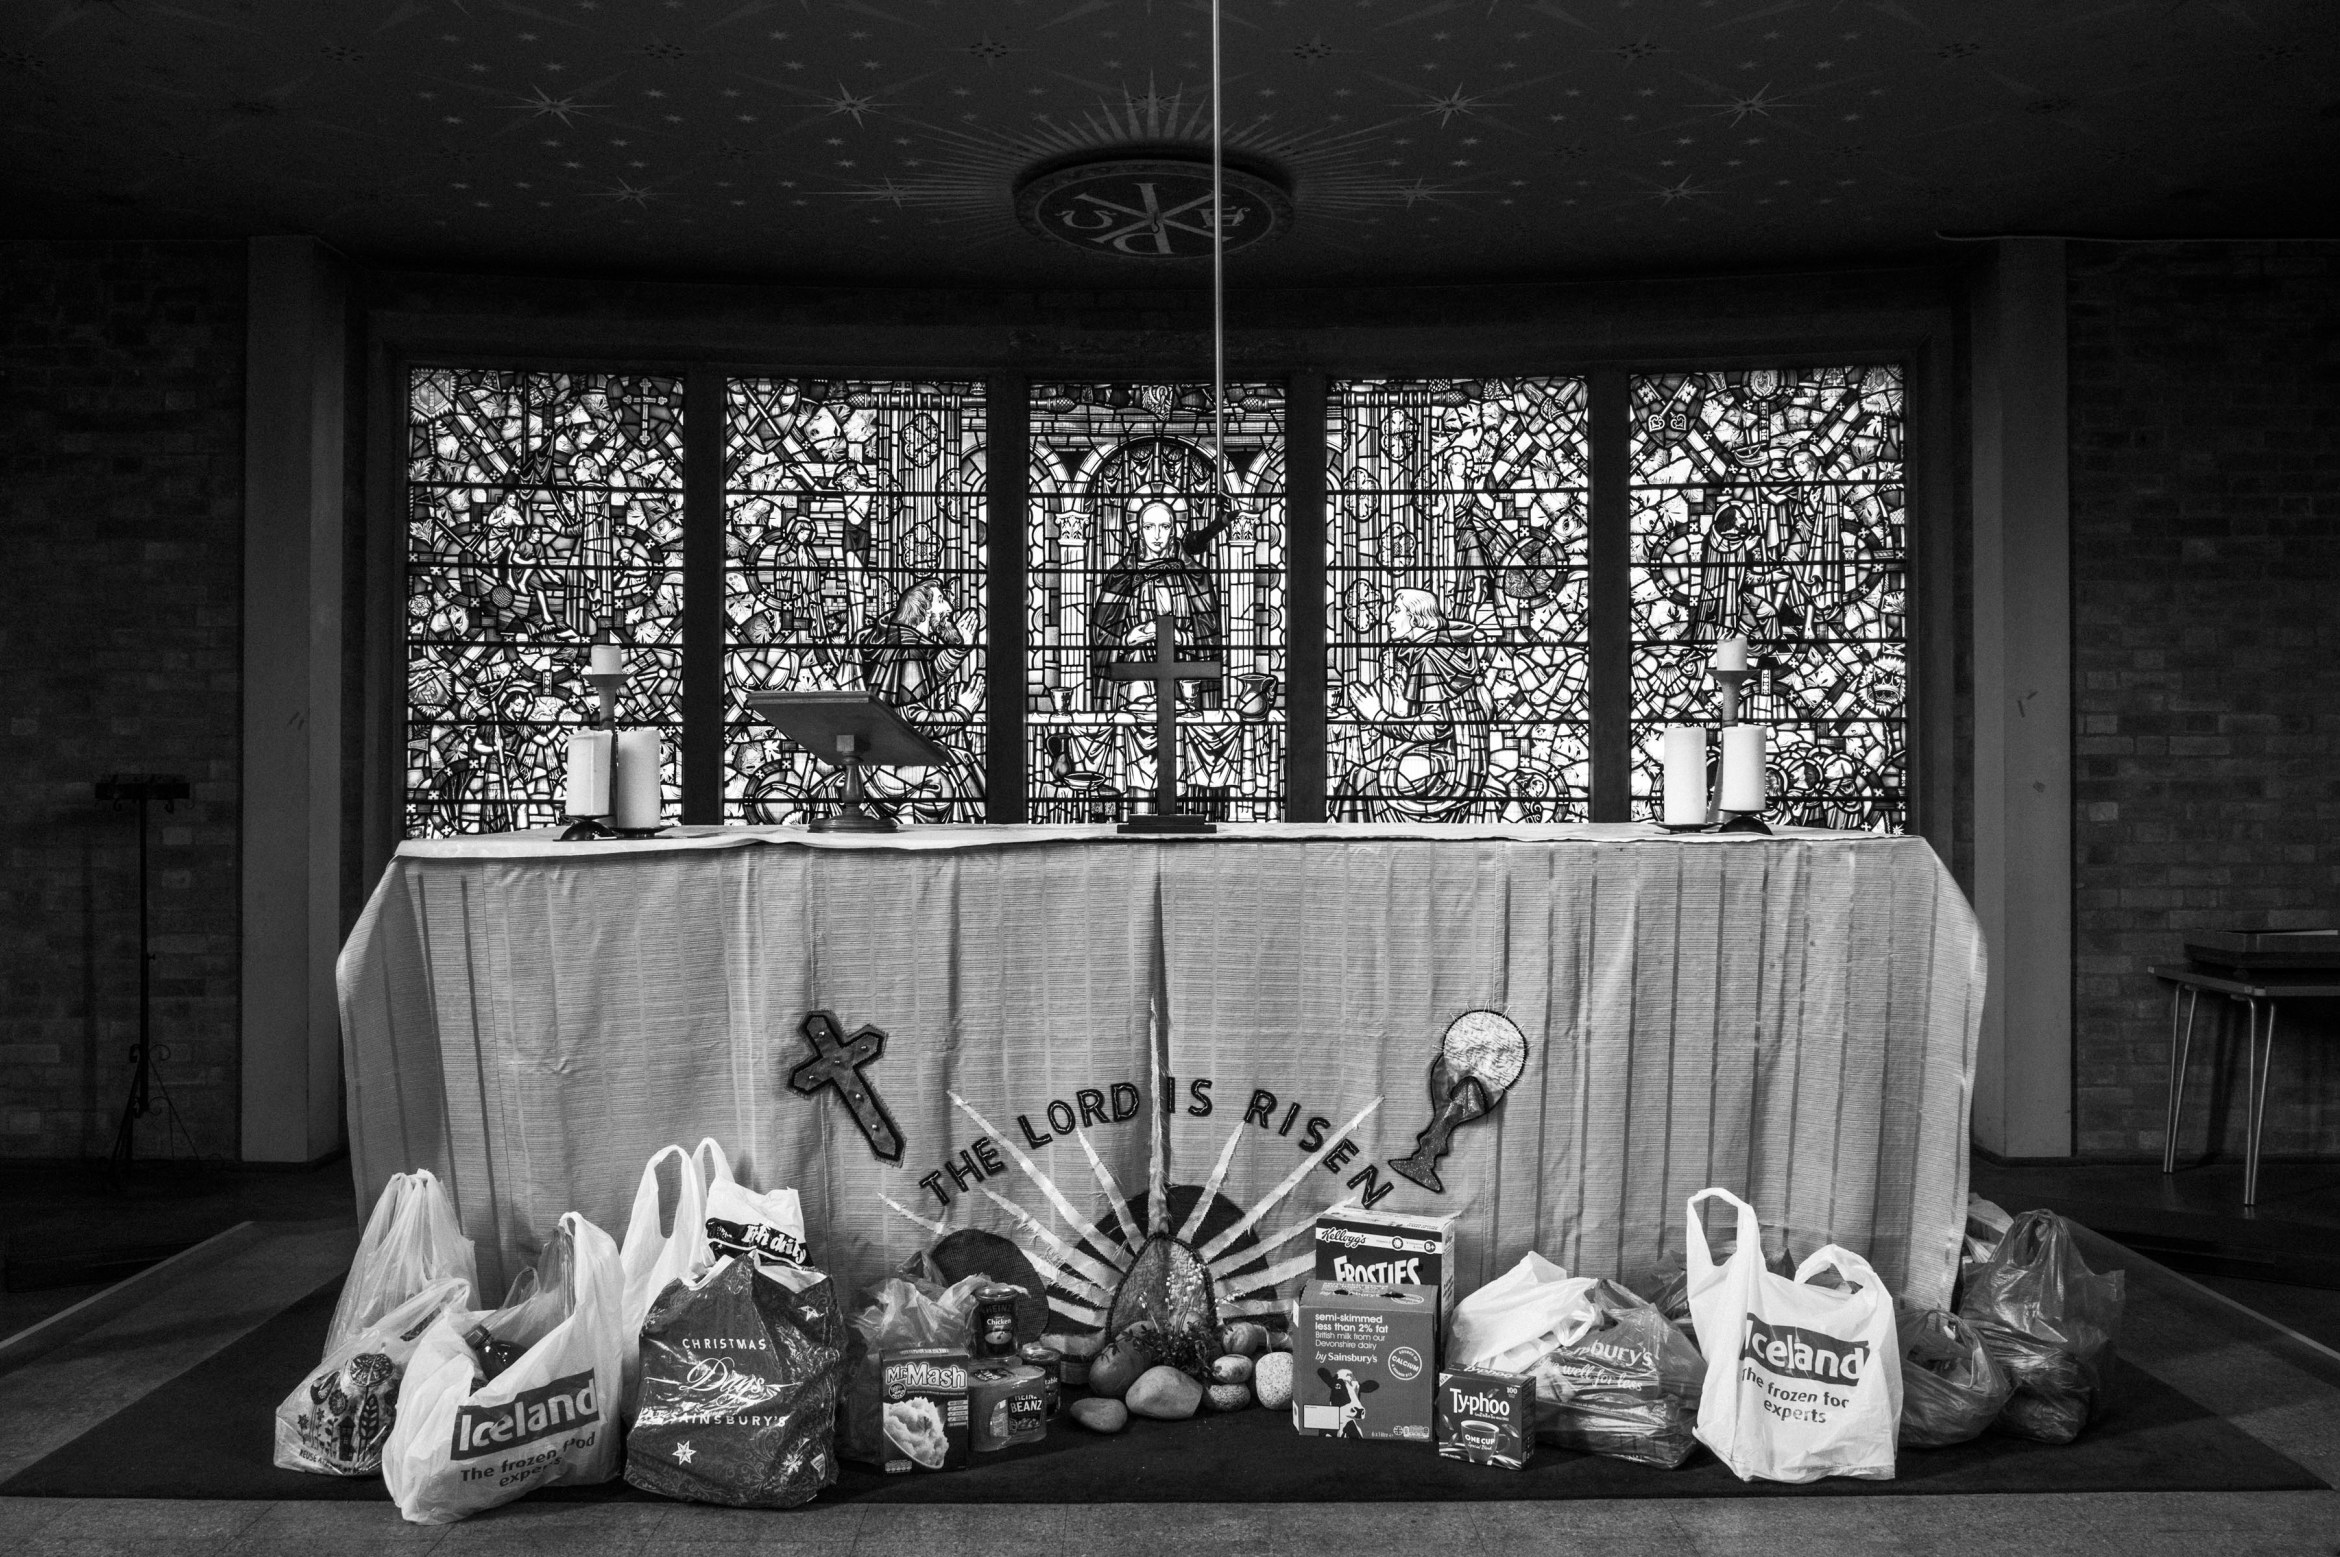 Foodbank Donations, Of things not seen. A year in the life of a London priest, Jim Grover, L1030724-